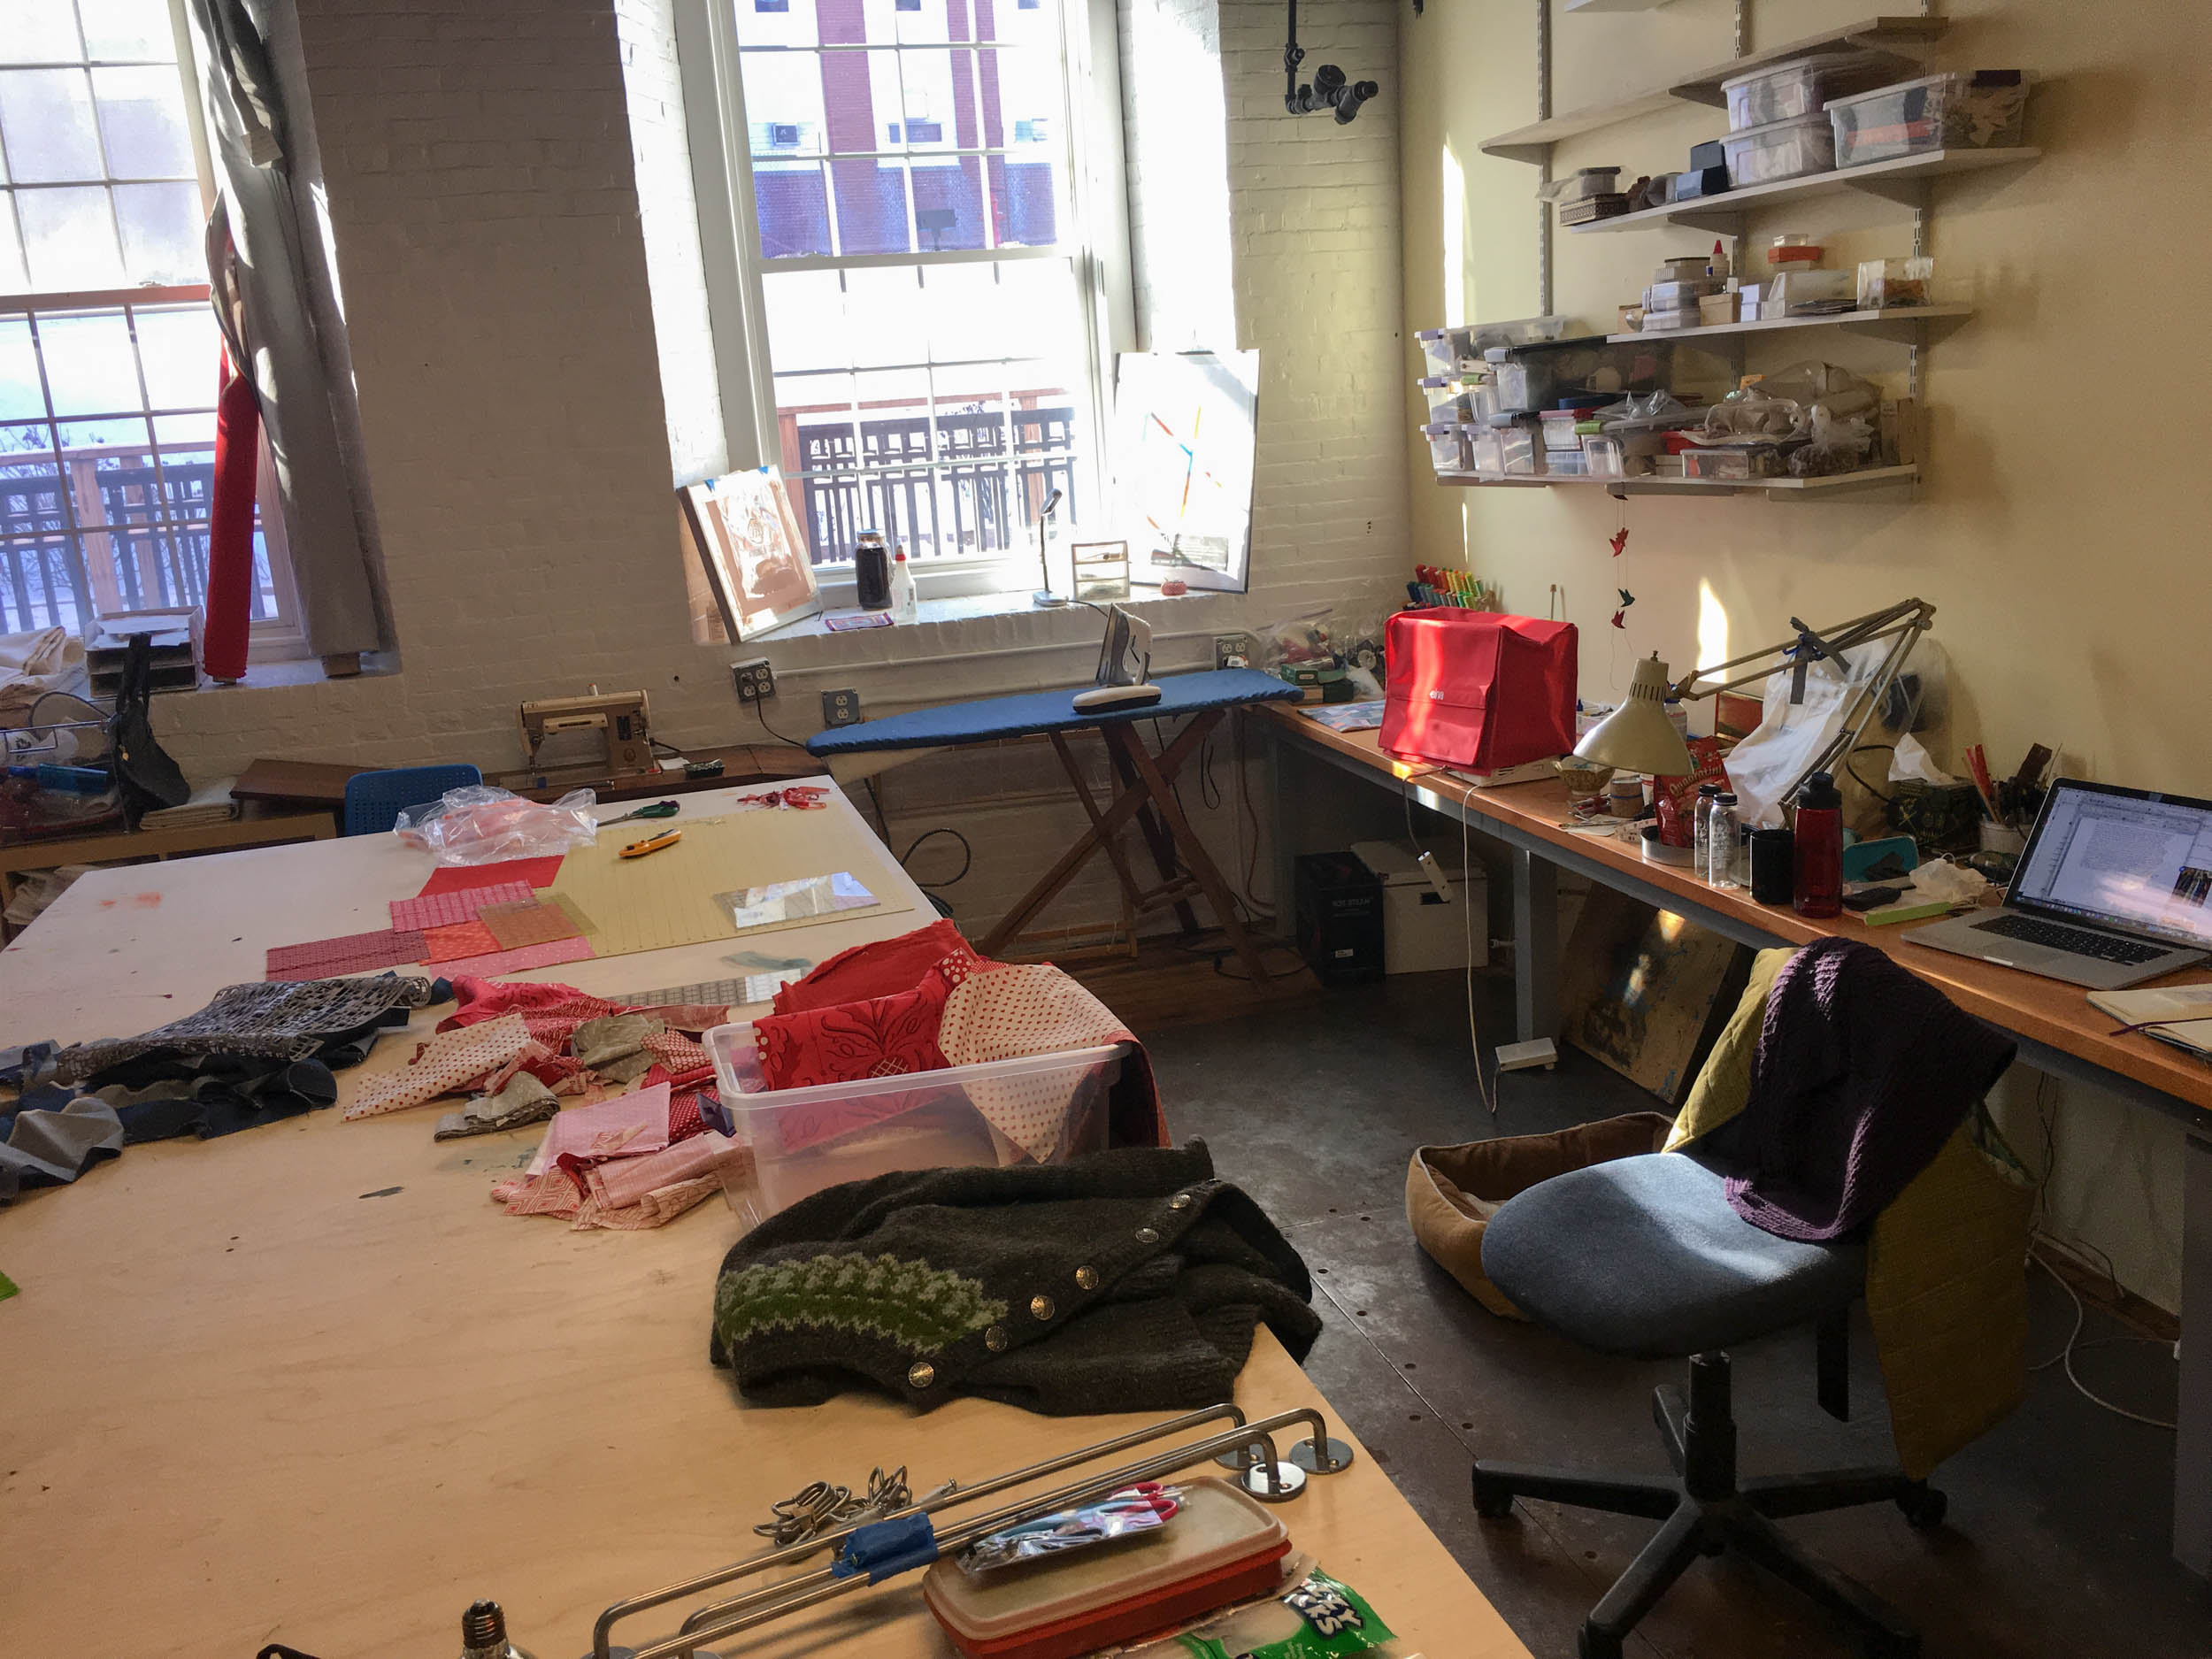 At the moment my studio is a chaotic mess, but it is my safe haven, and a place to work through my anxiety.....